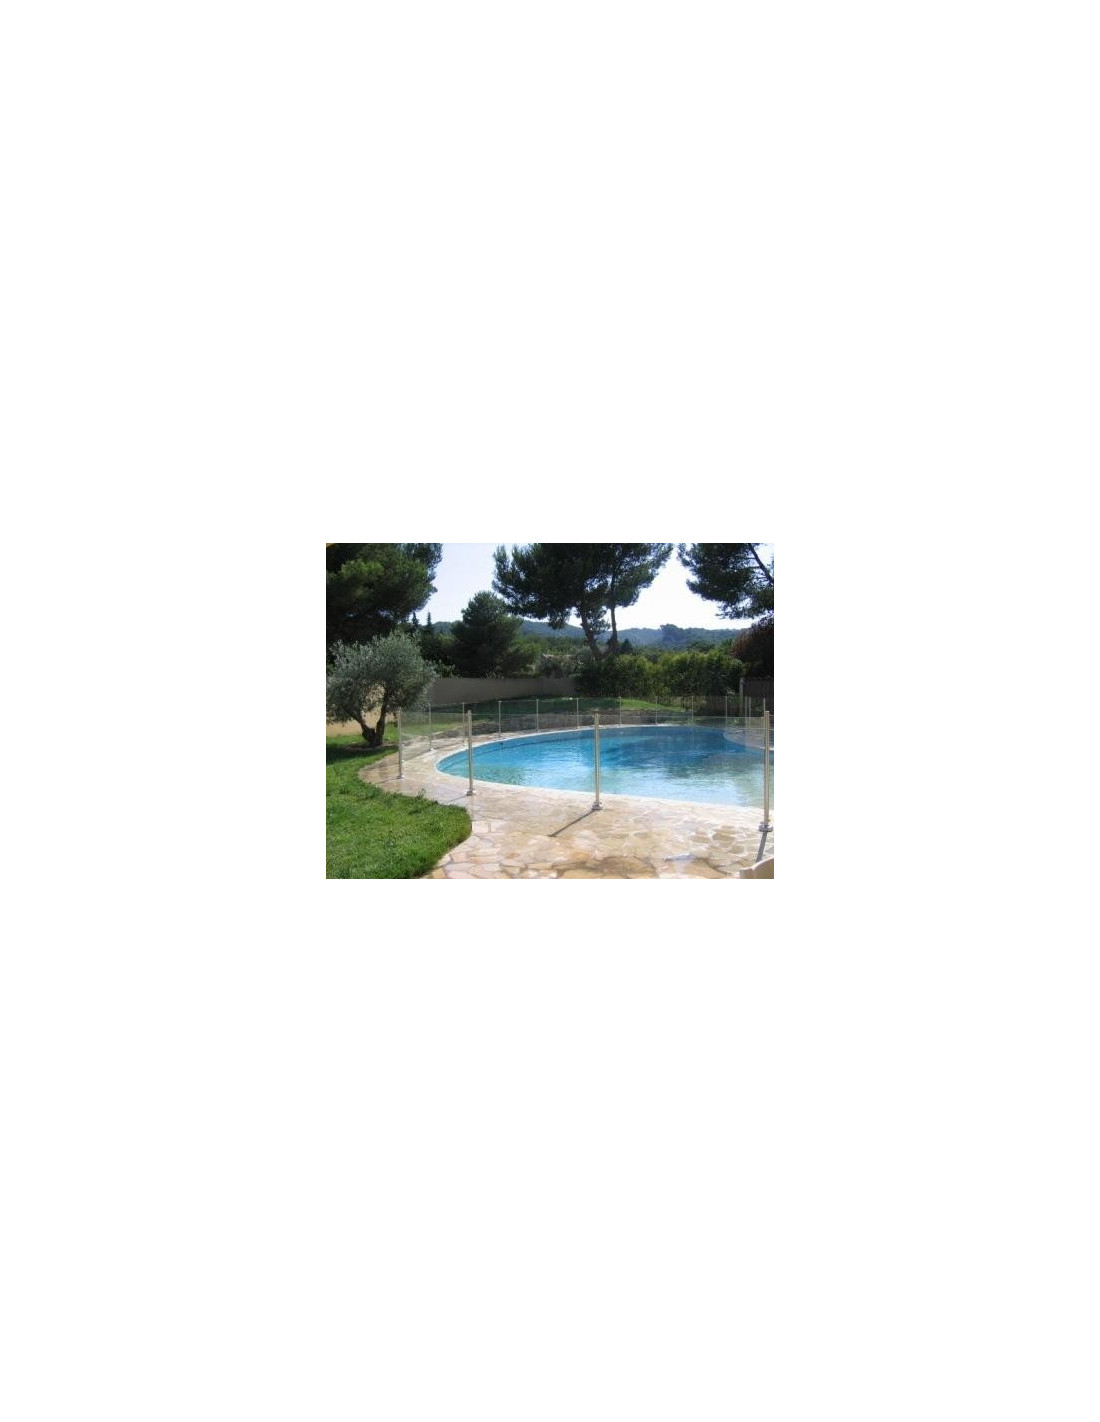 Barri re de piscine en verre et inox oceanix 1m for Barriere piscine verre inox